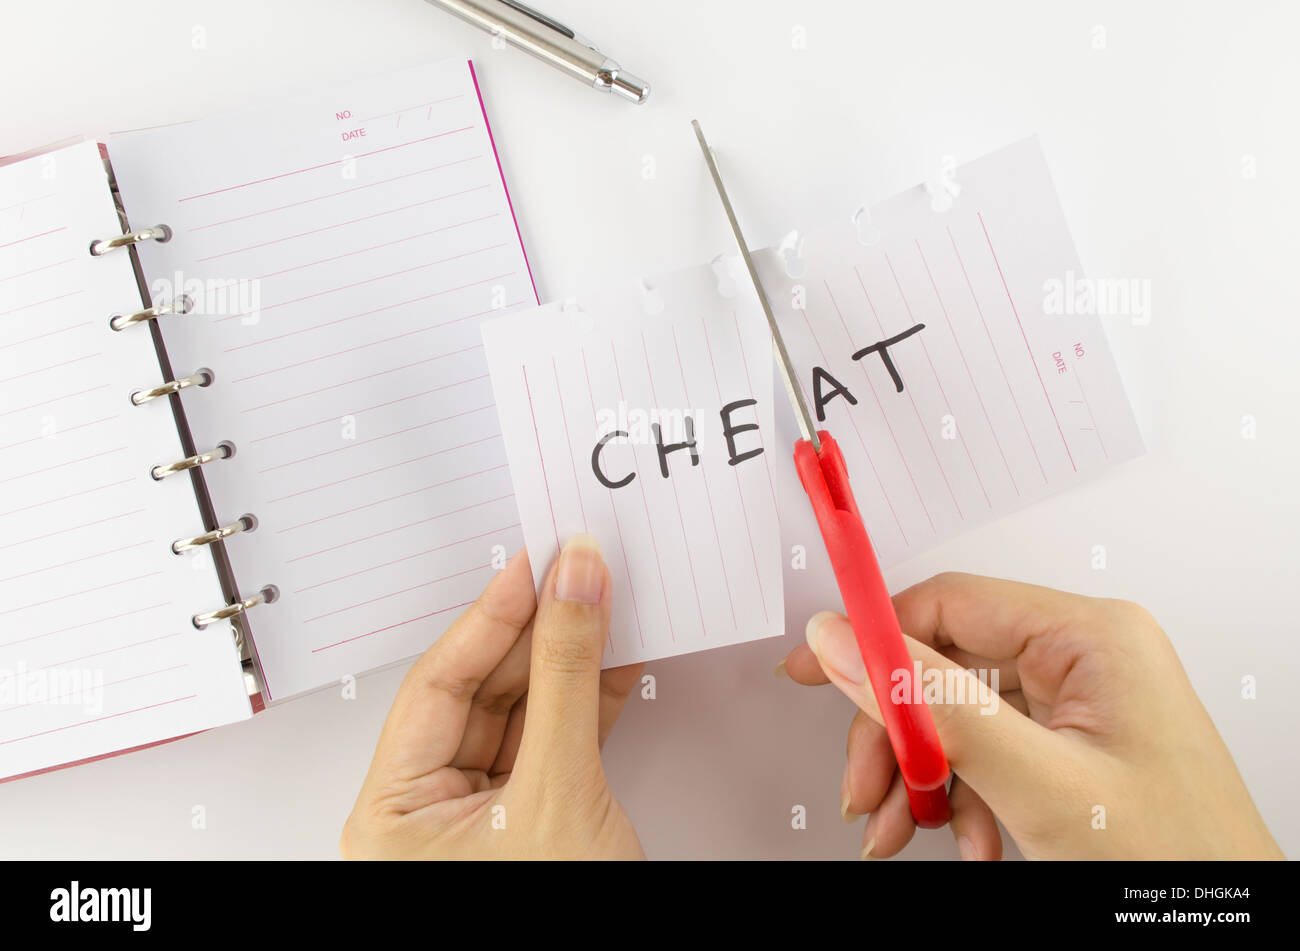 Persons who were cutting paper labeled 'cheat' - Stock Image